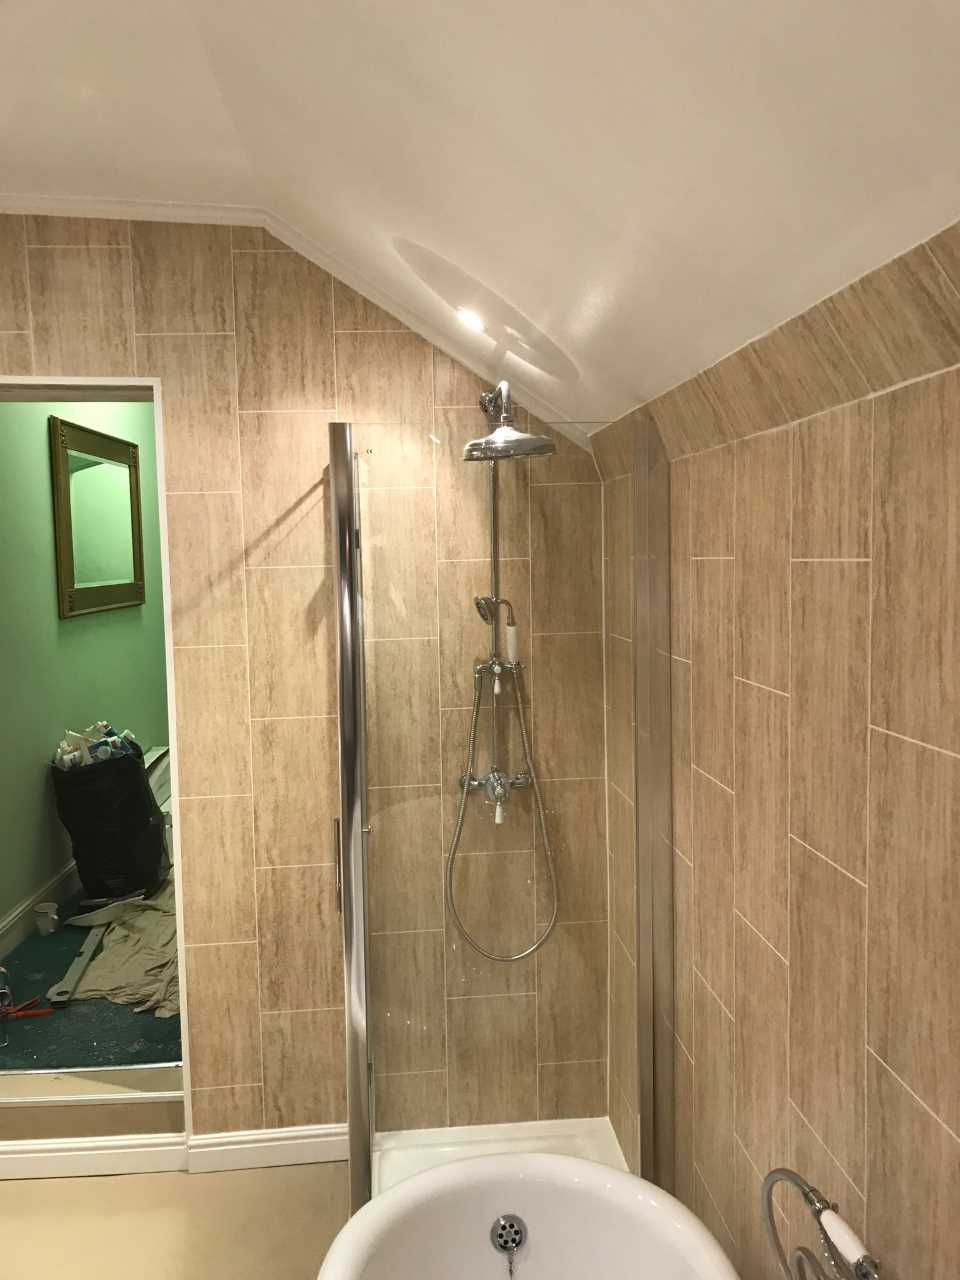 Shower Enclosure installed in bathroom Designed for All Family